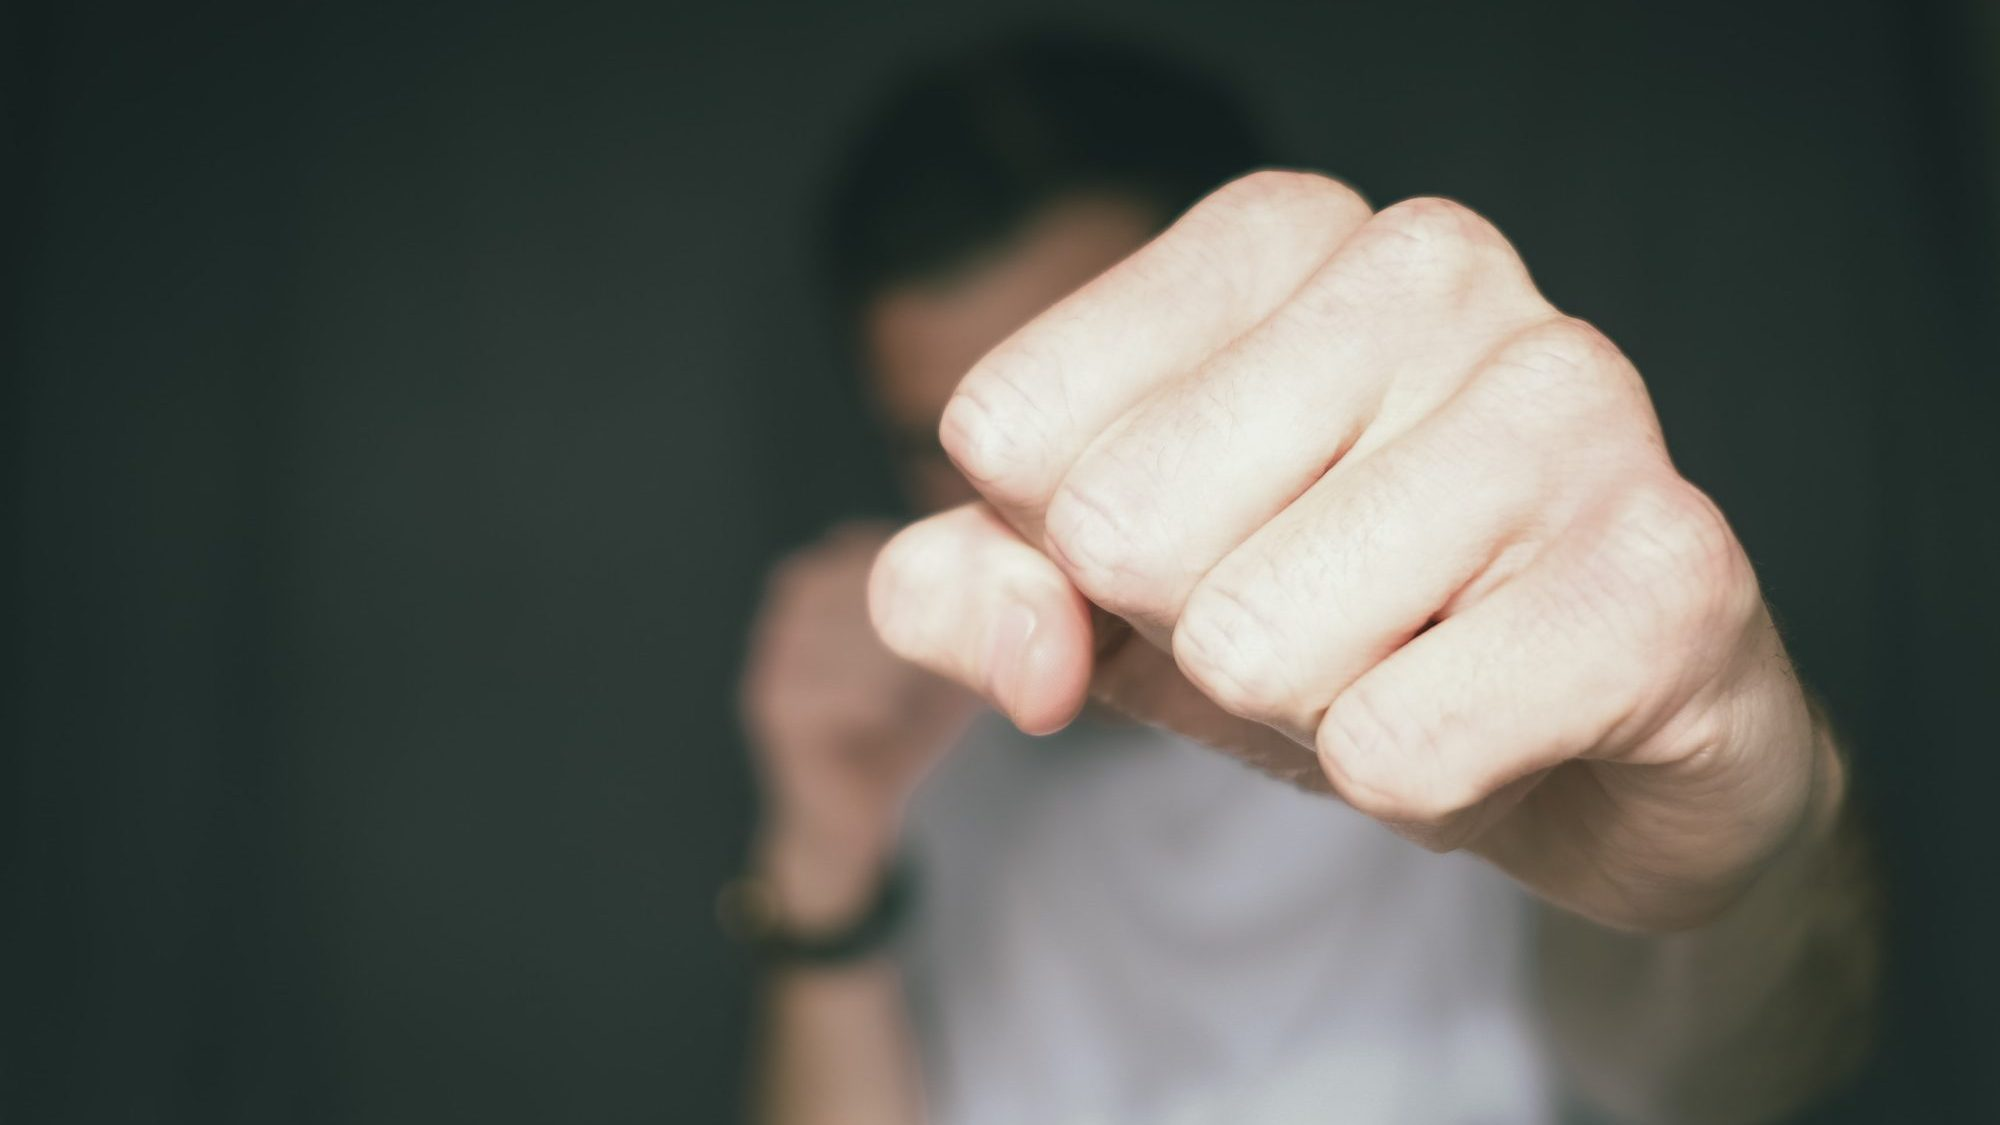 An image of a fist, extended in a punch towards the camera.